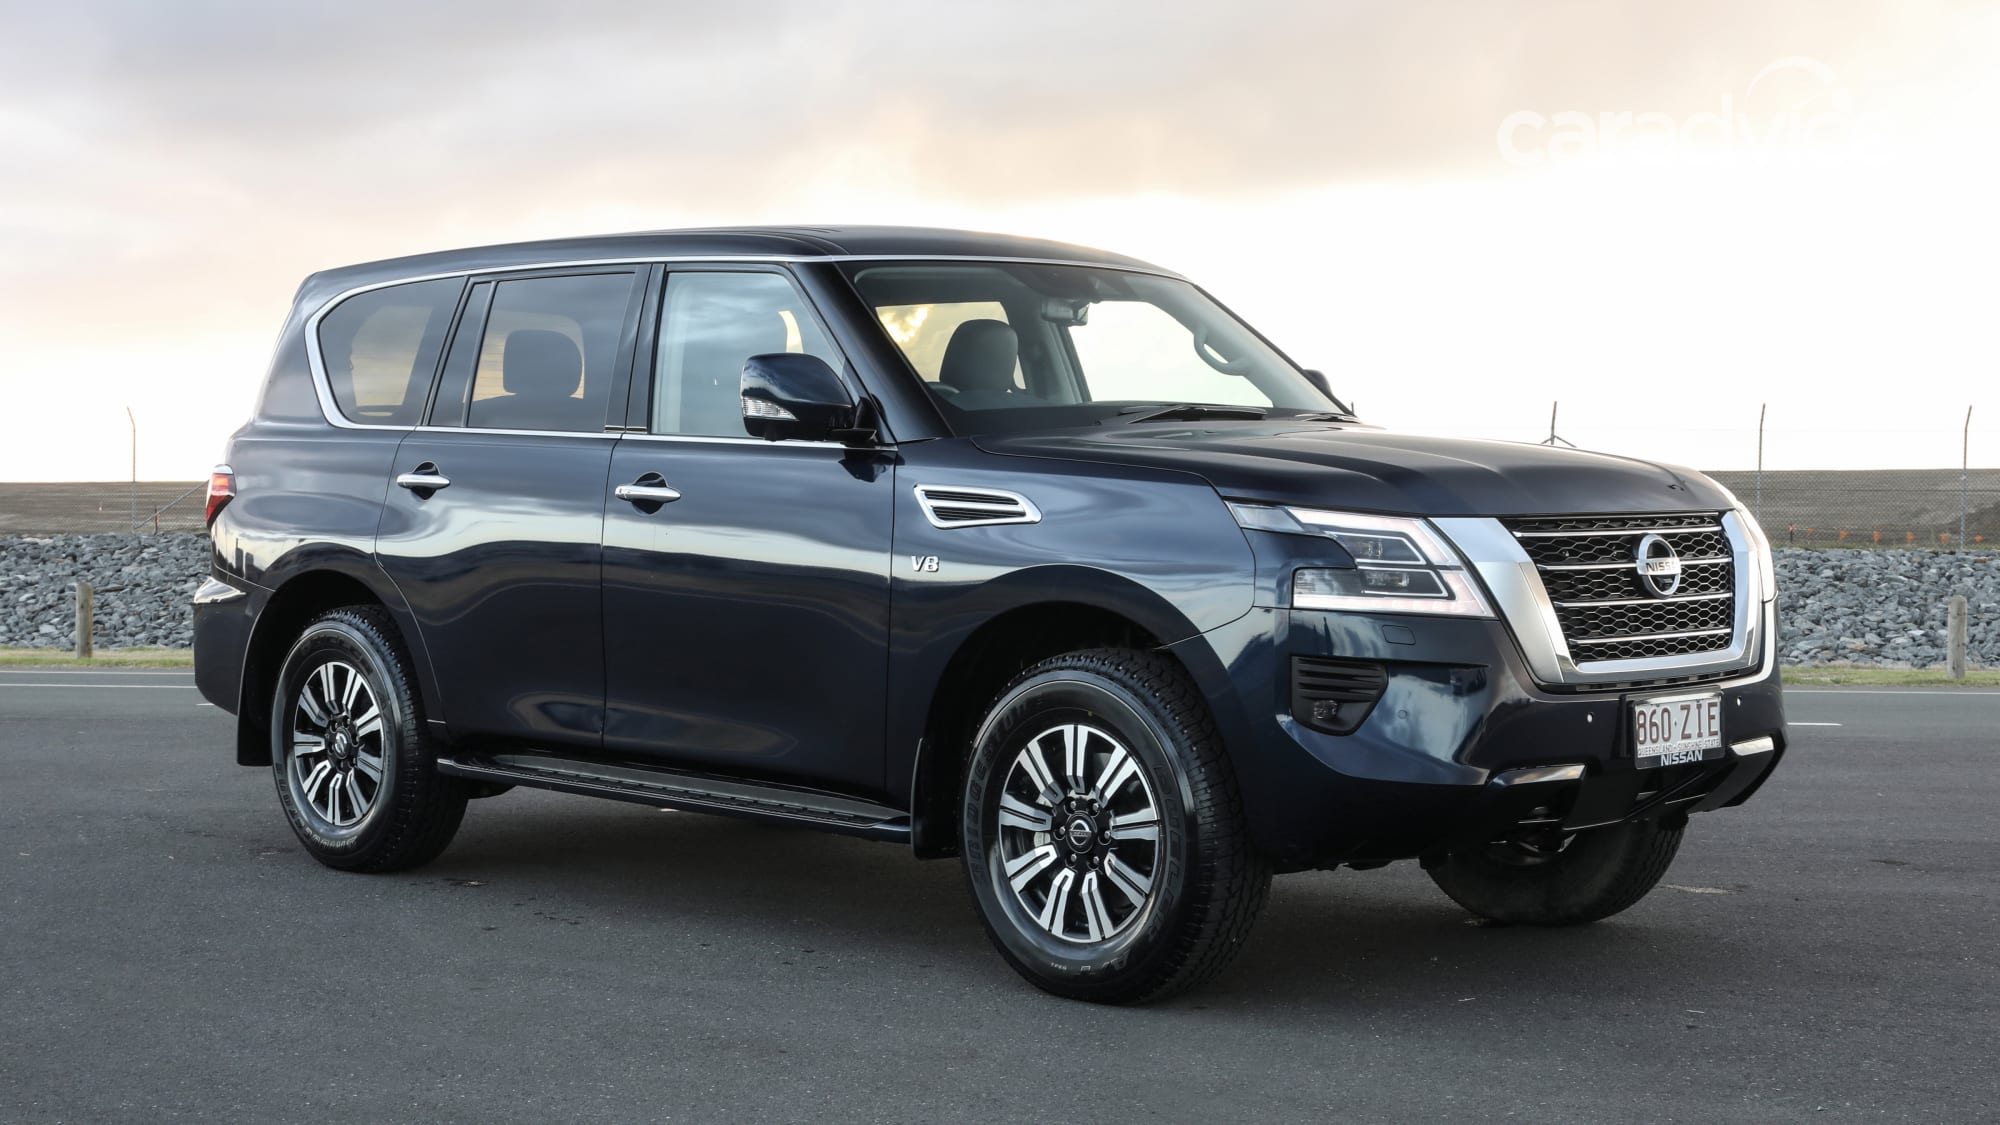 2020 Nissan Patrol pricing and specs: AEB now standard, no ...